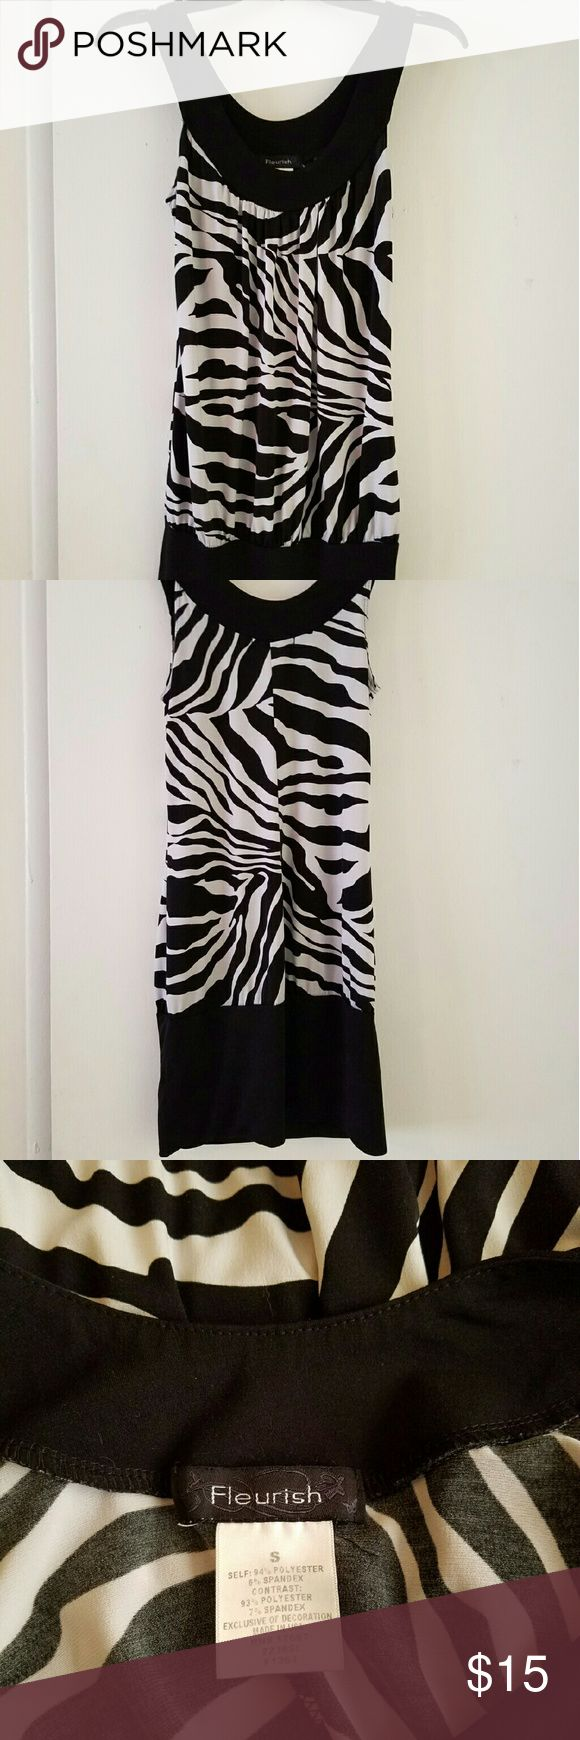 Fleurish mini dress Black and white zebra pattern mini dress. Can also be worn as a tunic top. Excellent condition,  measurements available upon request. Dresses Mini